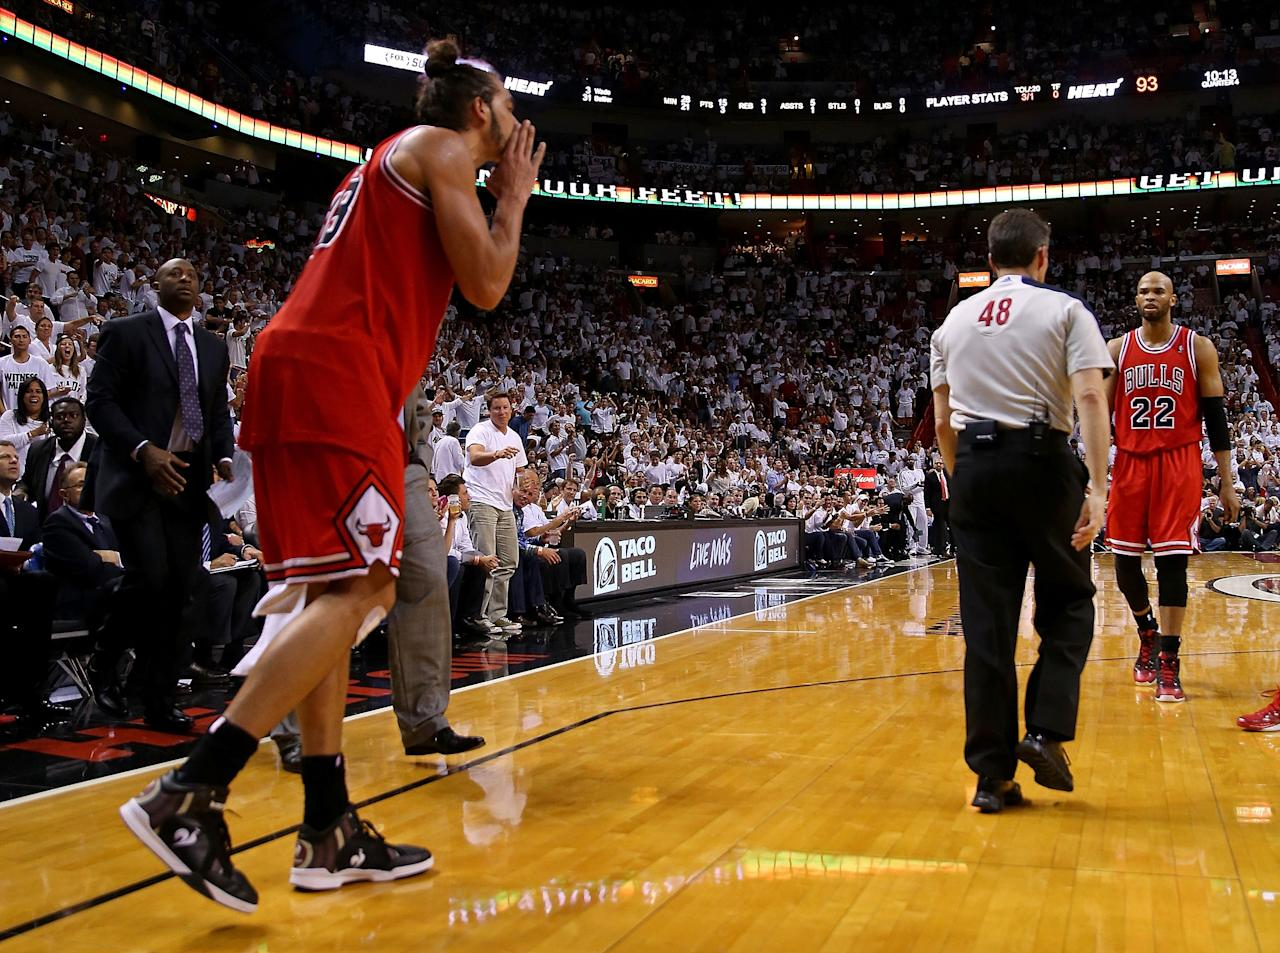 MIAMI, FL - MAY 08:  Joakim Noah #13 of the Chicago Bulls is ejected after arguing with referee Scott Foster #48 during Game Two of the Eastern Conference Semifinals of the 2013 NBA Playoffs against the Miami Heat at American Airlines Arena on May 8, 2013 in Miami, Florida. NOTE TO USER: User expressly acknowledges and agrees that, by downloading and or using this photograph, User is consenting to the terms and conditions of the Getty Images License Agreement.  (Photo by Mike Ehrmann/Getty Images)